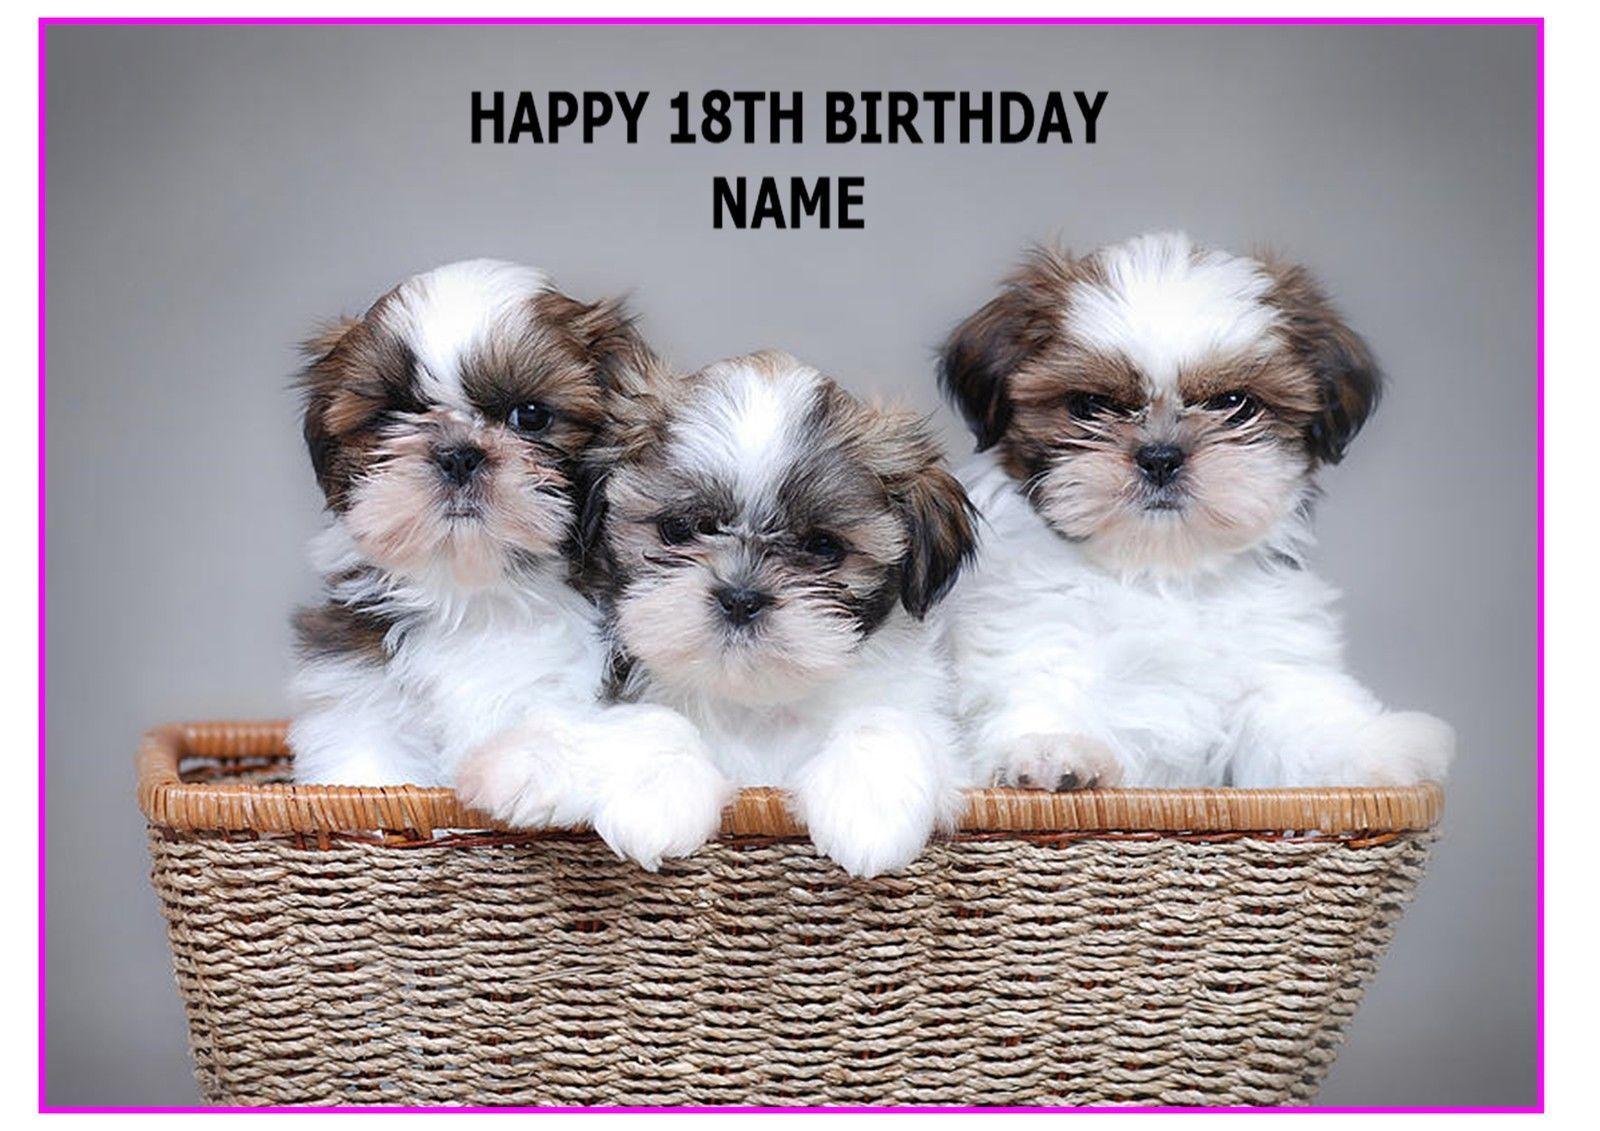 Shih Tzu Cute Dog Pup A4 Rectangle Cake Topper Wafer Card Rice